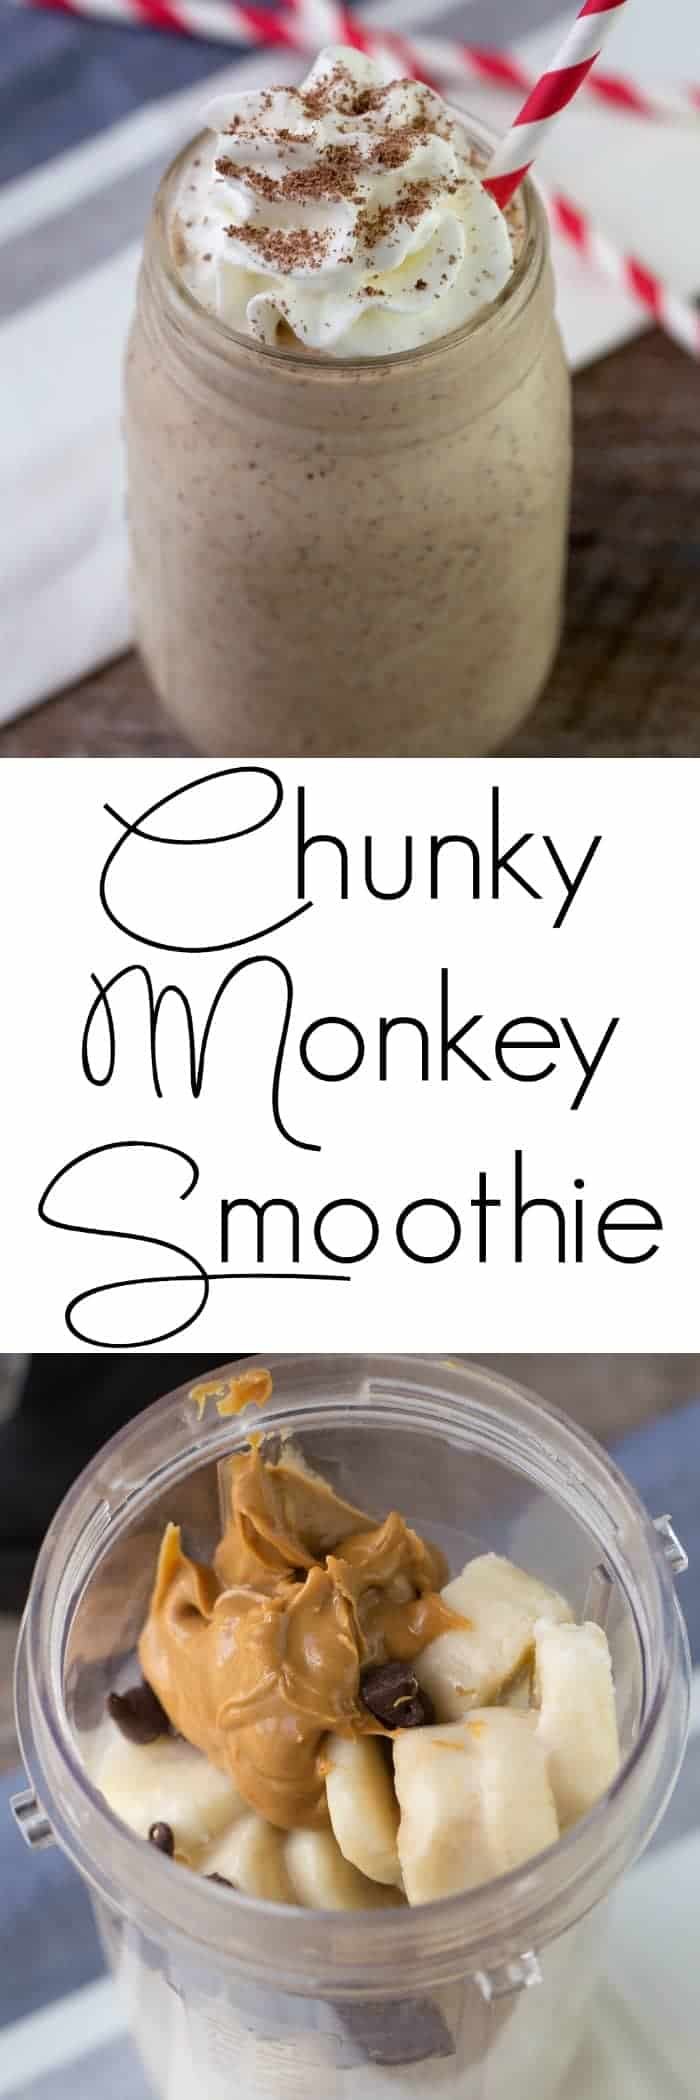 Chunky Monkey Smoothie! A great after school snack or easy breakfast and it is gluten free!